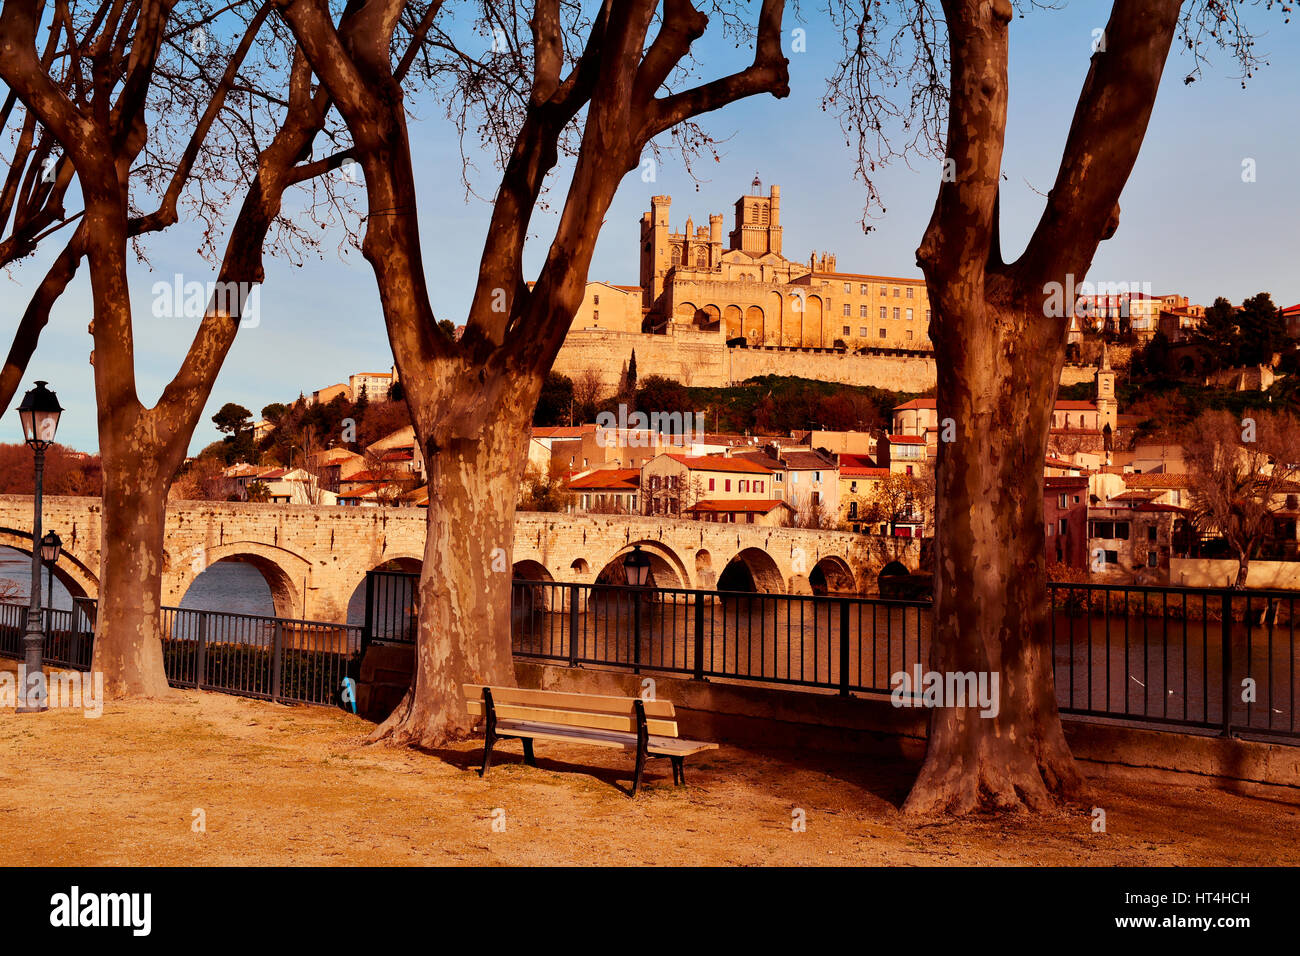 a view of the Pont Vieux bridge above the Orb River in Beziers, France, with the Old Town on the right, highlighting - Stock Image